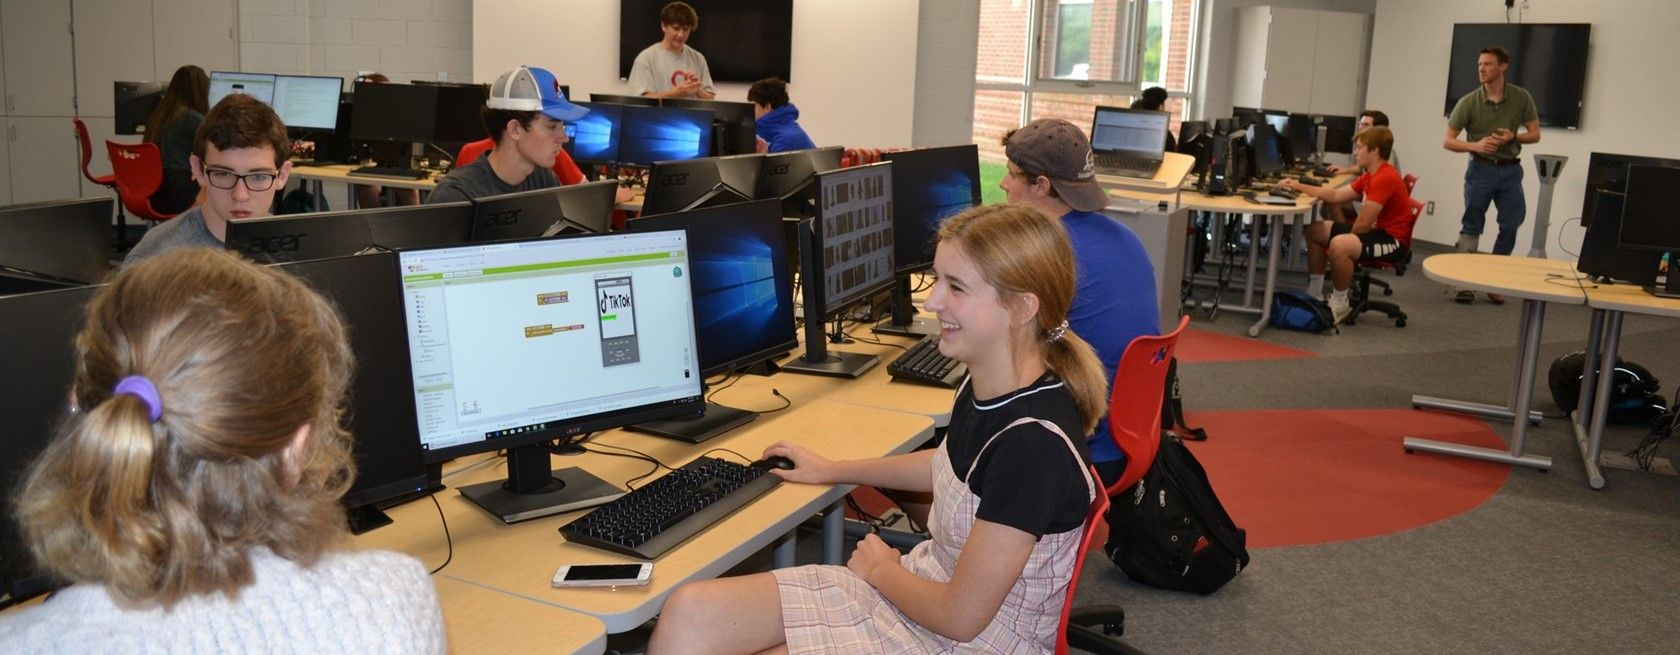 view of students at work in Digital Arts Technology Lab